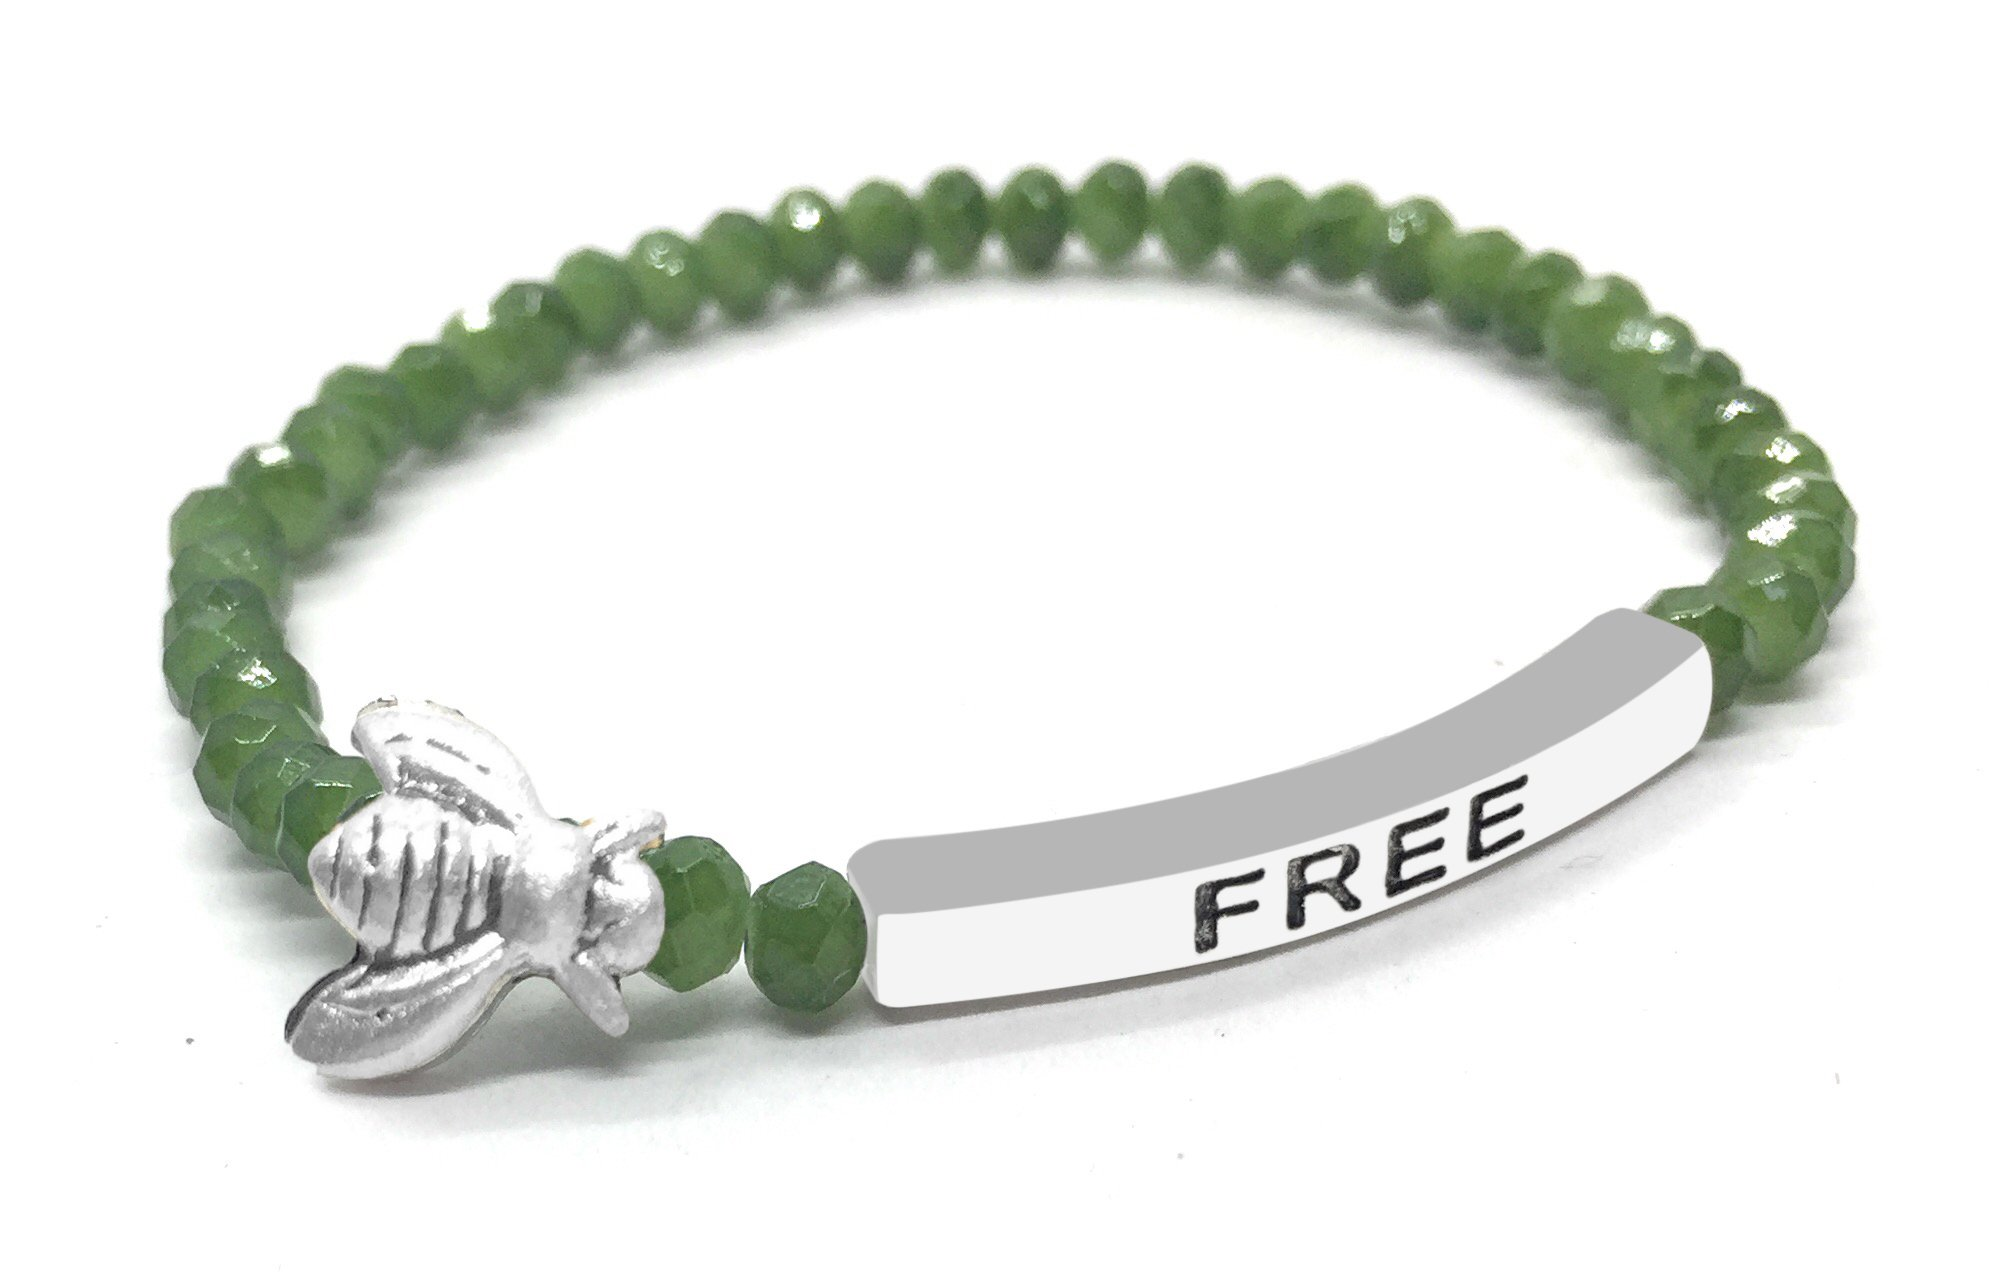 Bumble Bee Free Inspirational Quote Bracelet Green Bead Stacking Stretch Made in USA